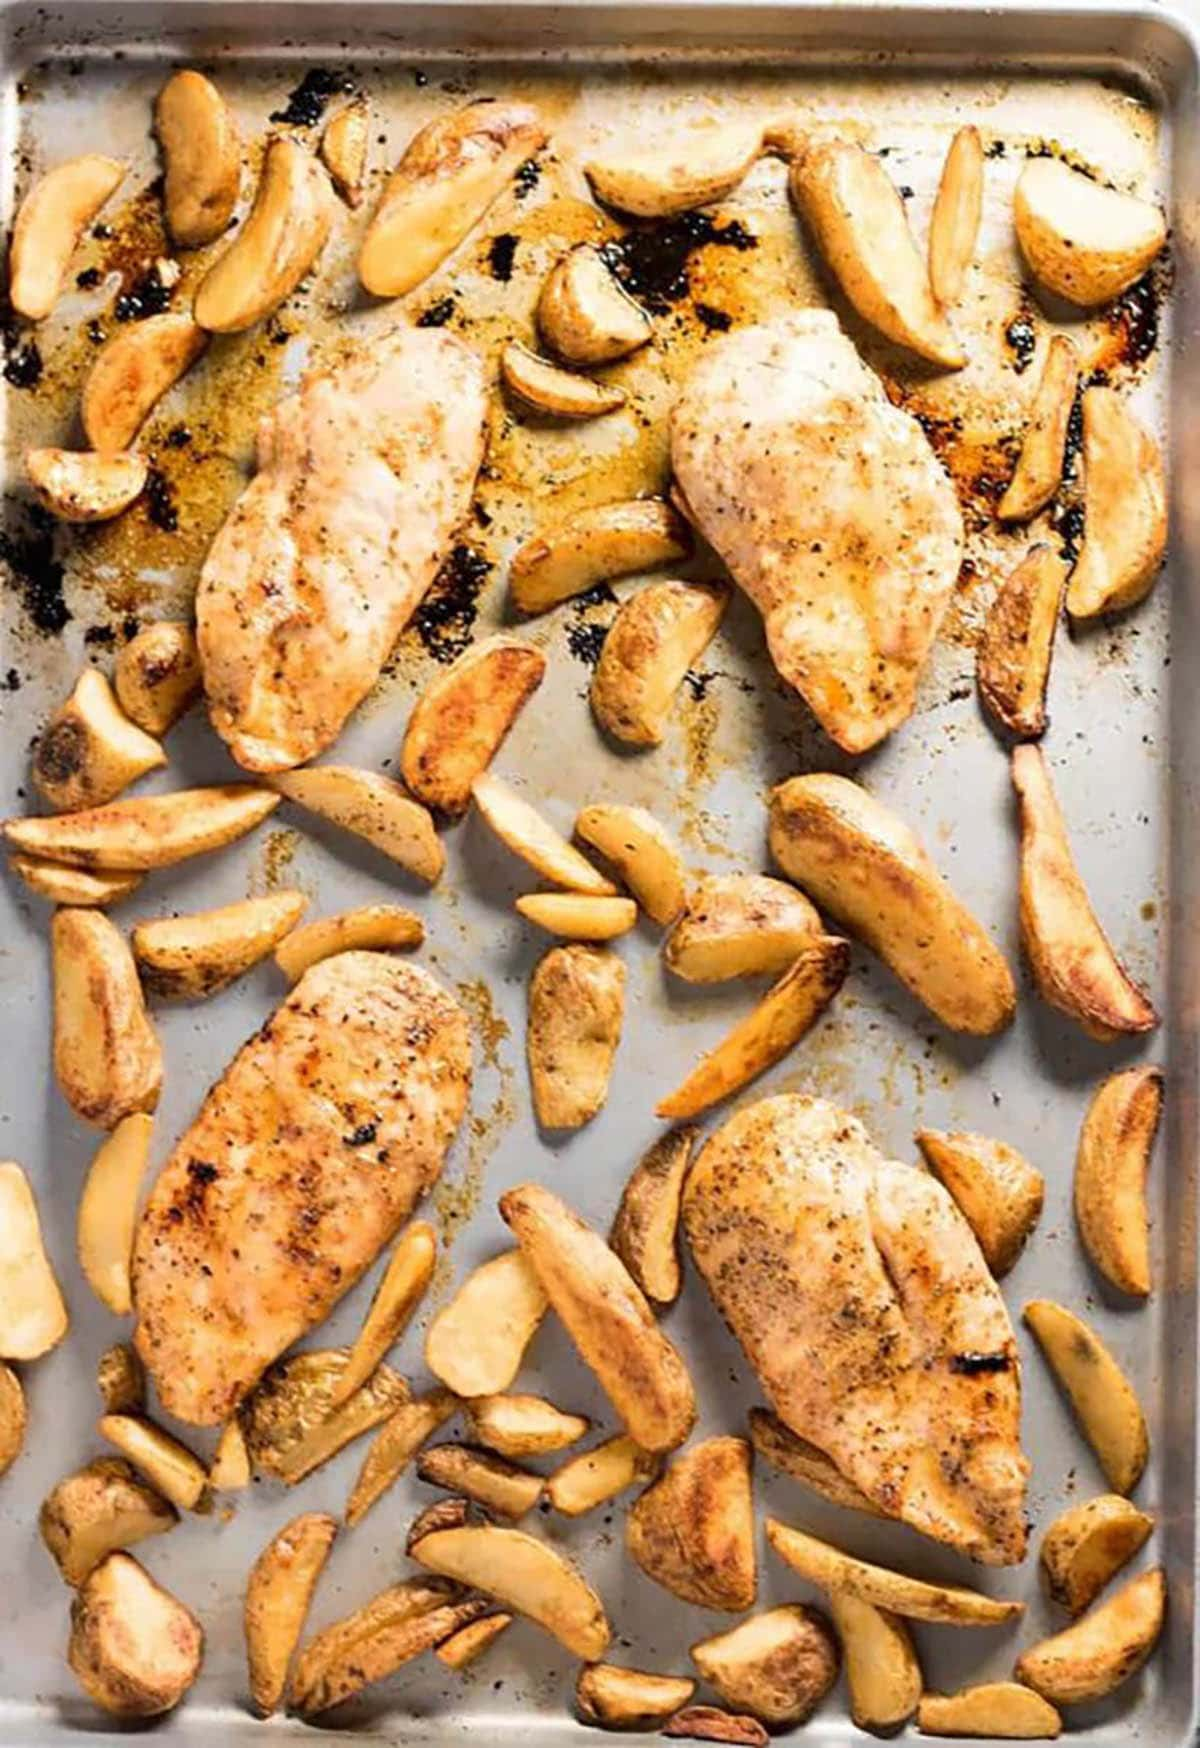 Cajun Chicken and Fries in a Sheet Pan